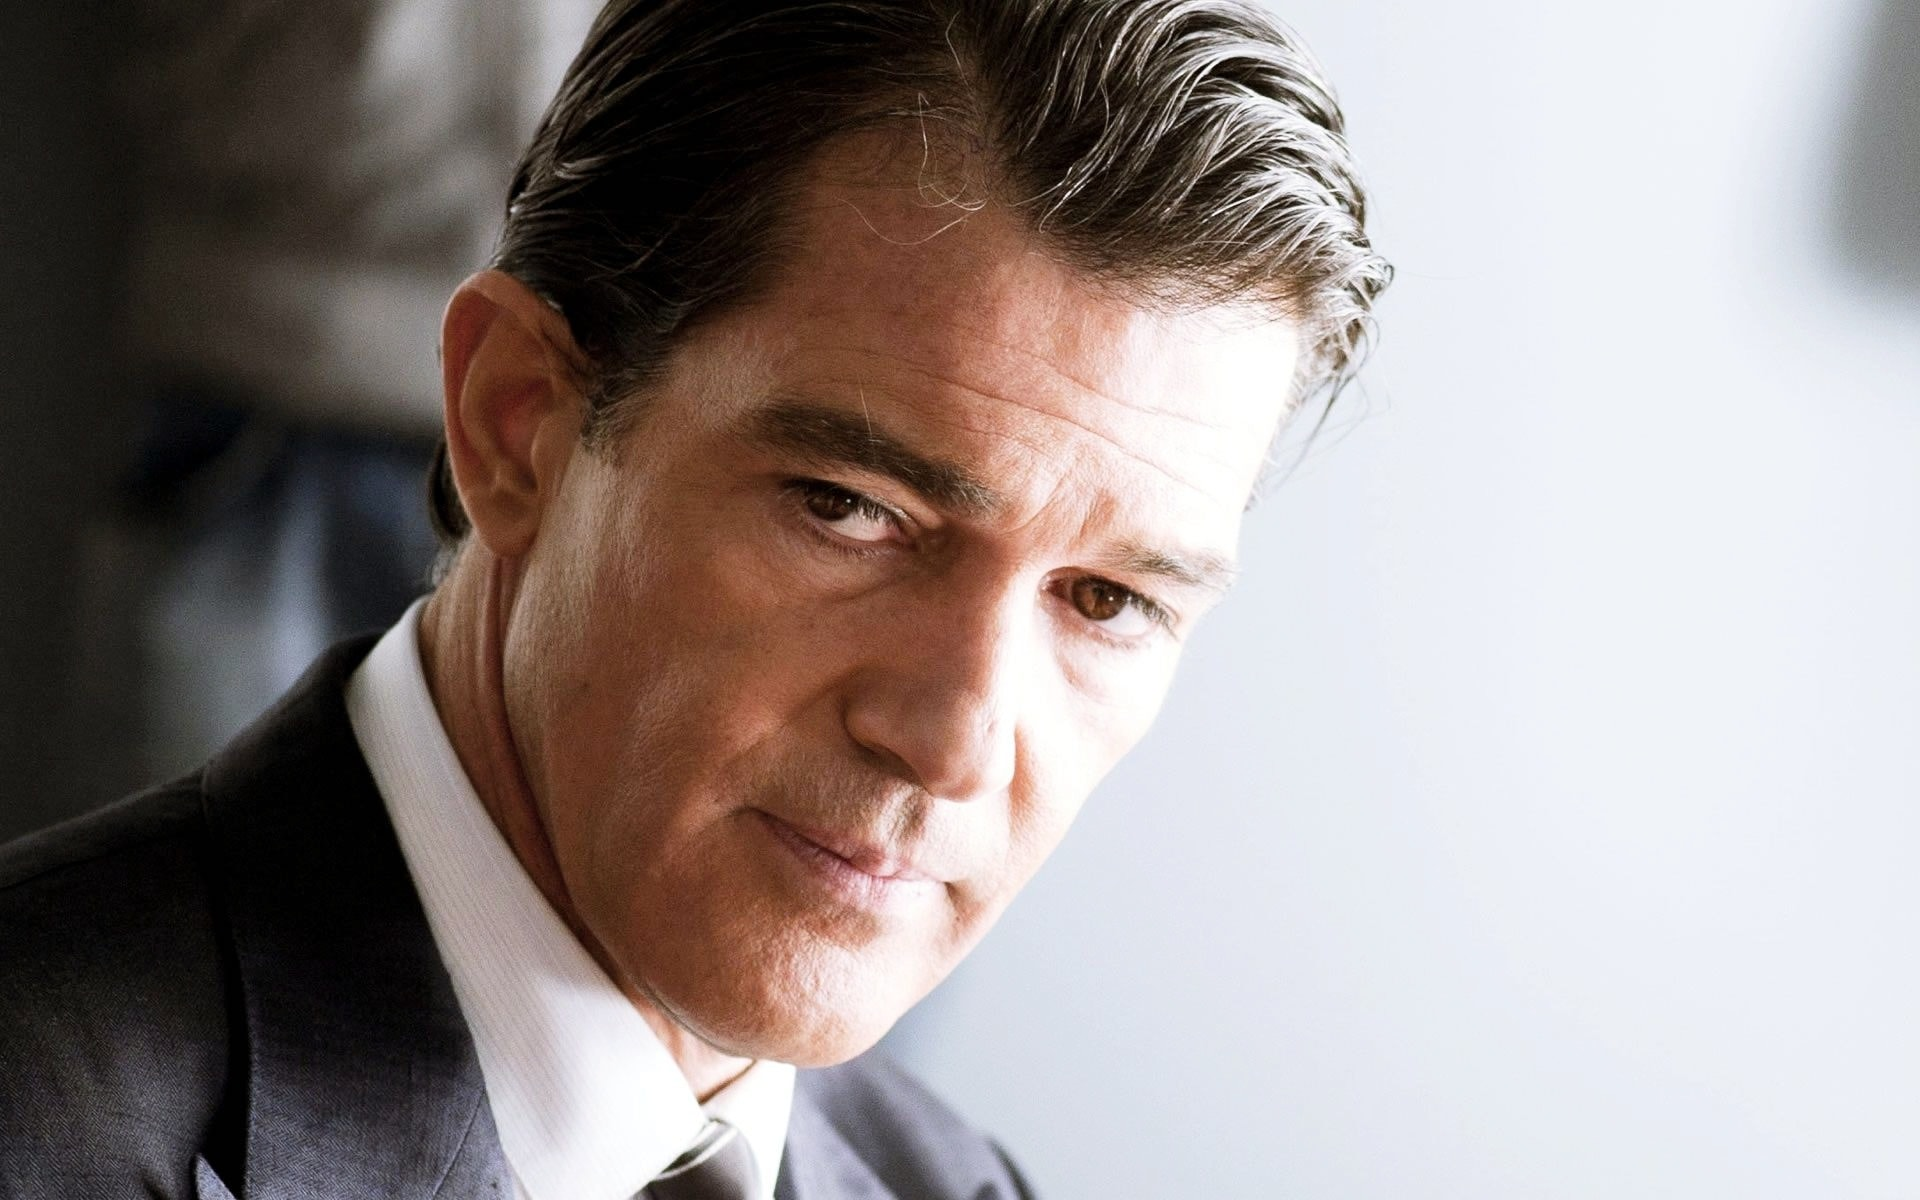 Antonio Banderas HQ wallpapers